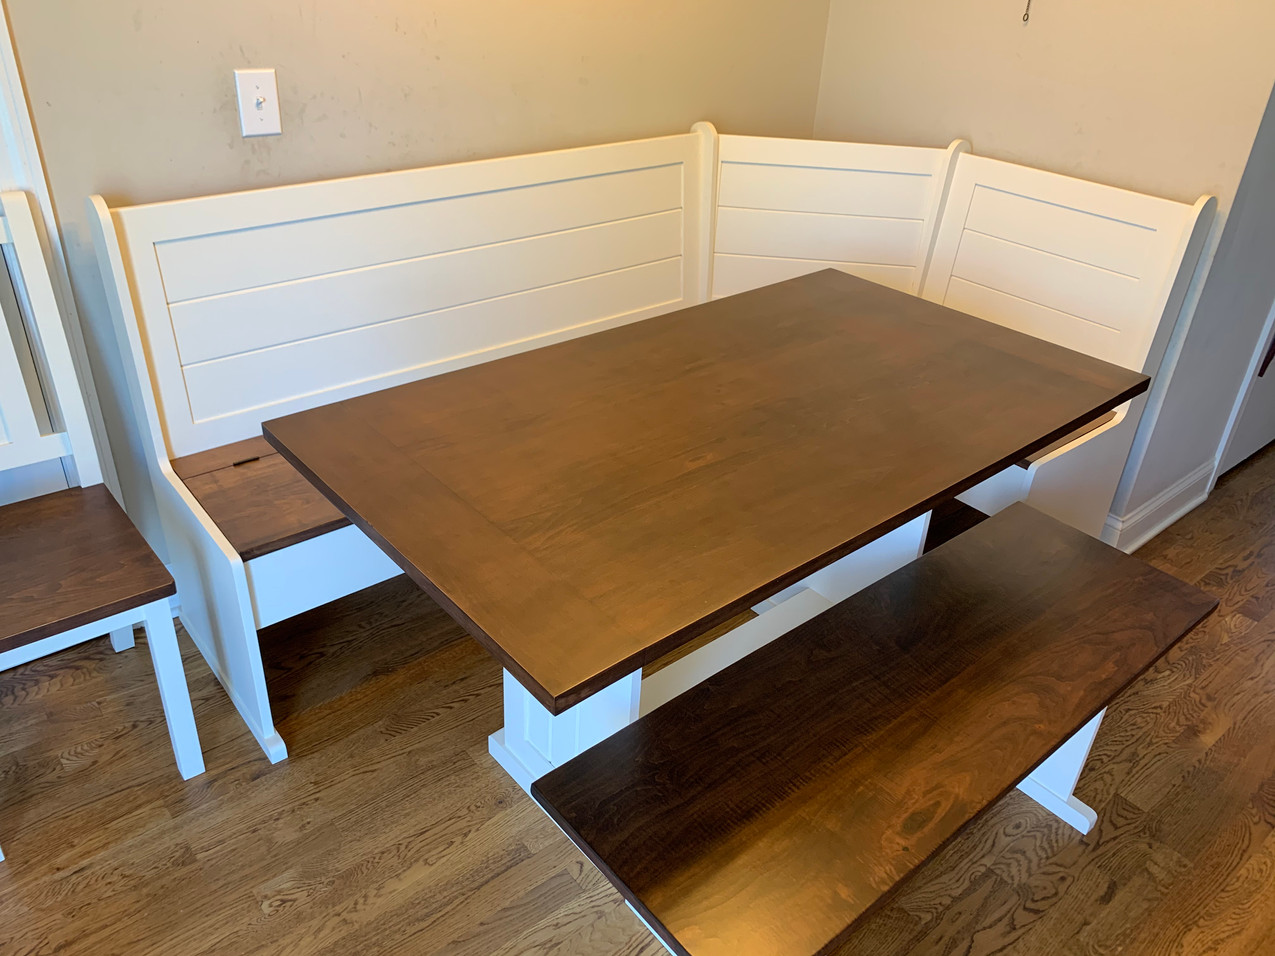 Farmhouse Table Build with Bench and Chair